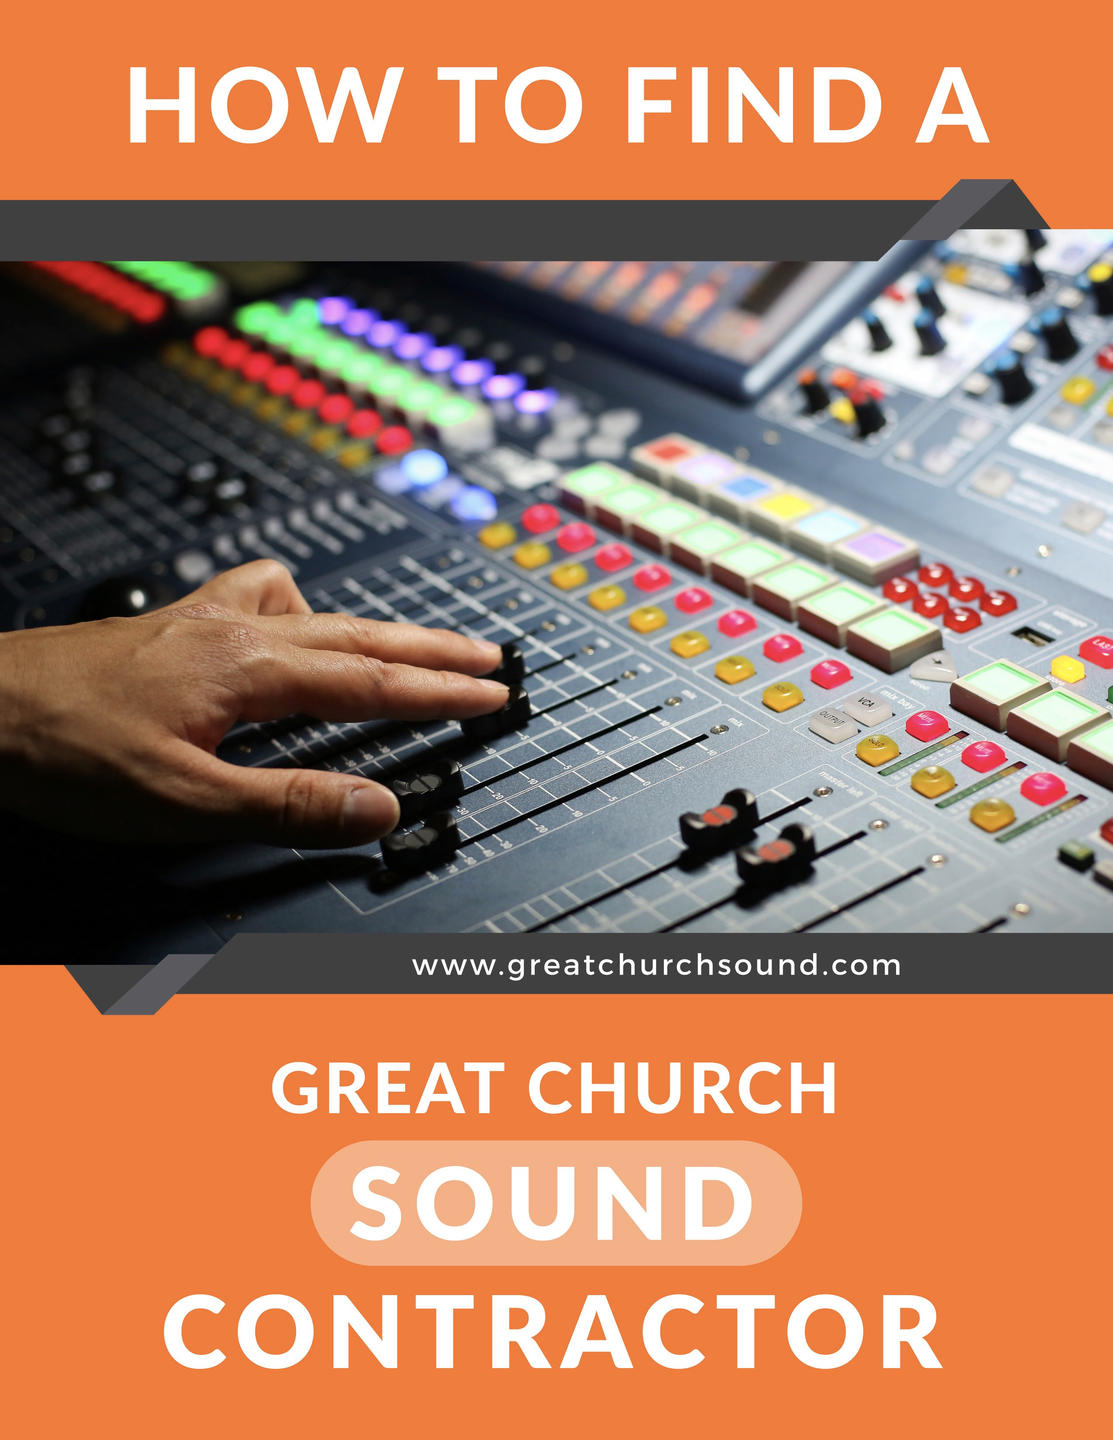 How To Find A Great Church Sound Contractor